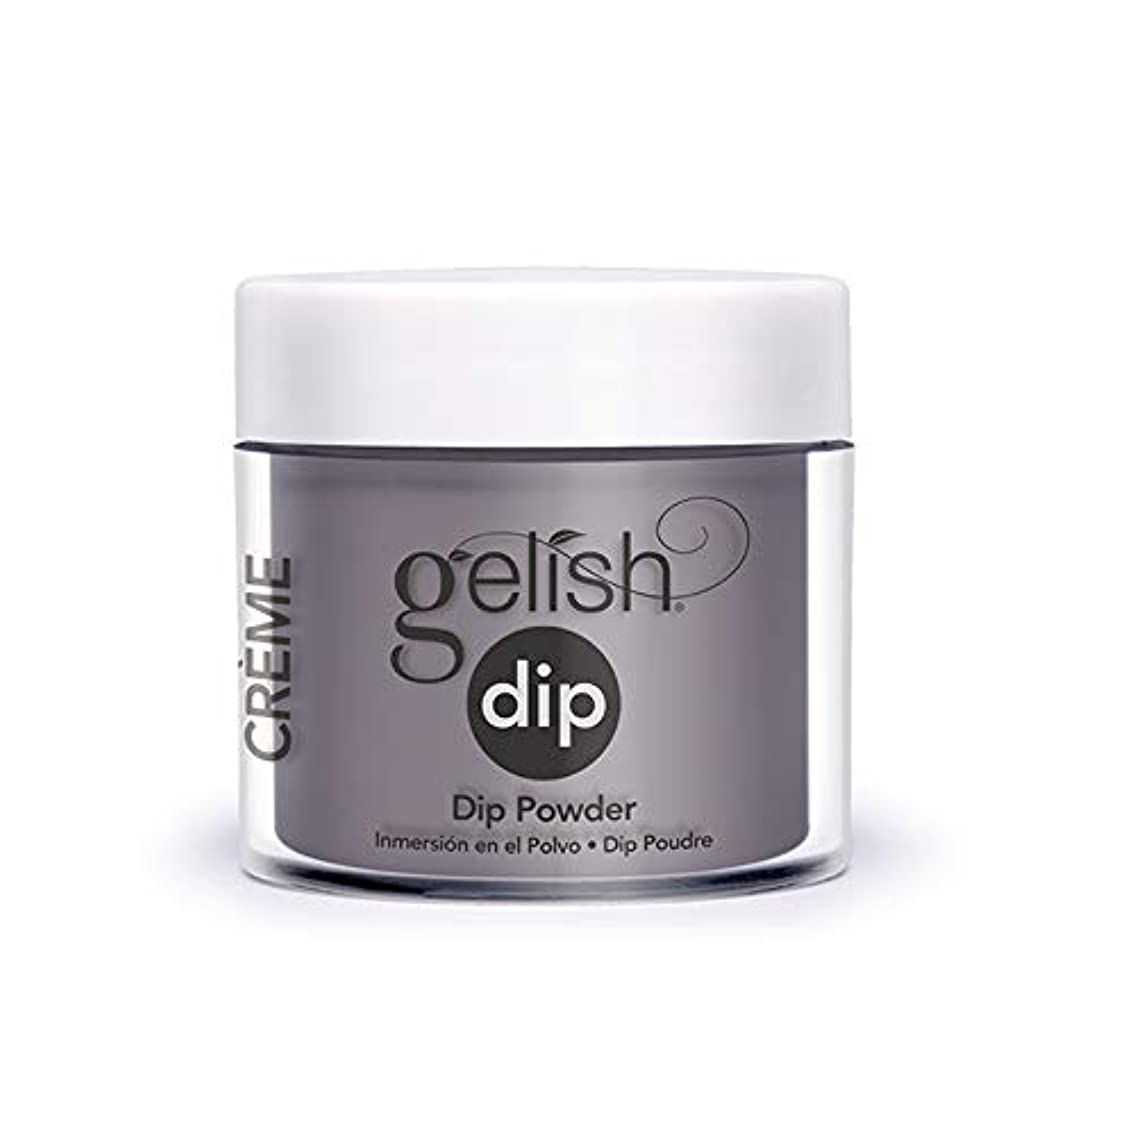 宿命鎮痛剤申し立てHarmony Gelish - Acrylic Dip Powder - Met my Match - 23g / 0.8oz